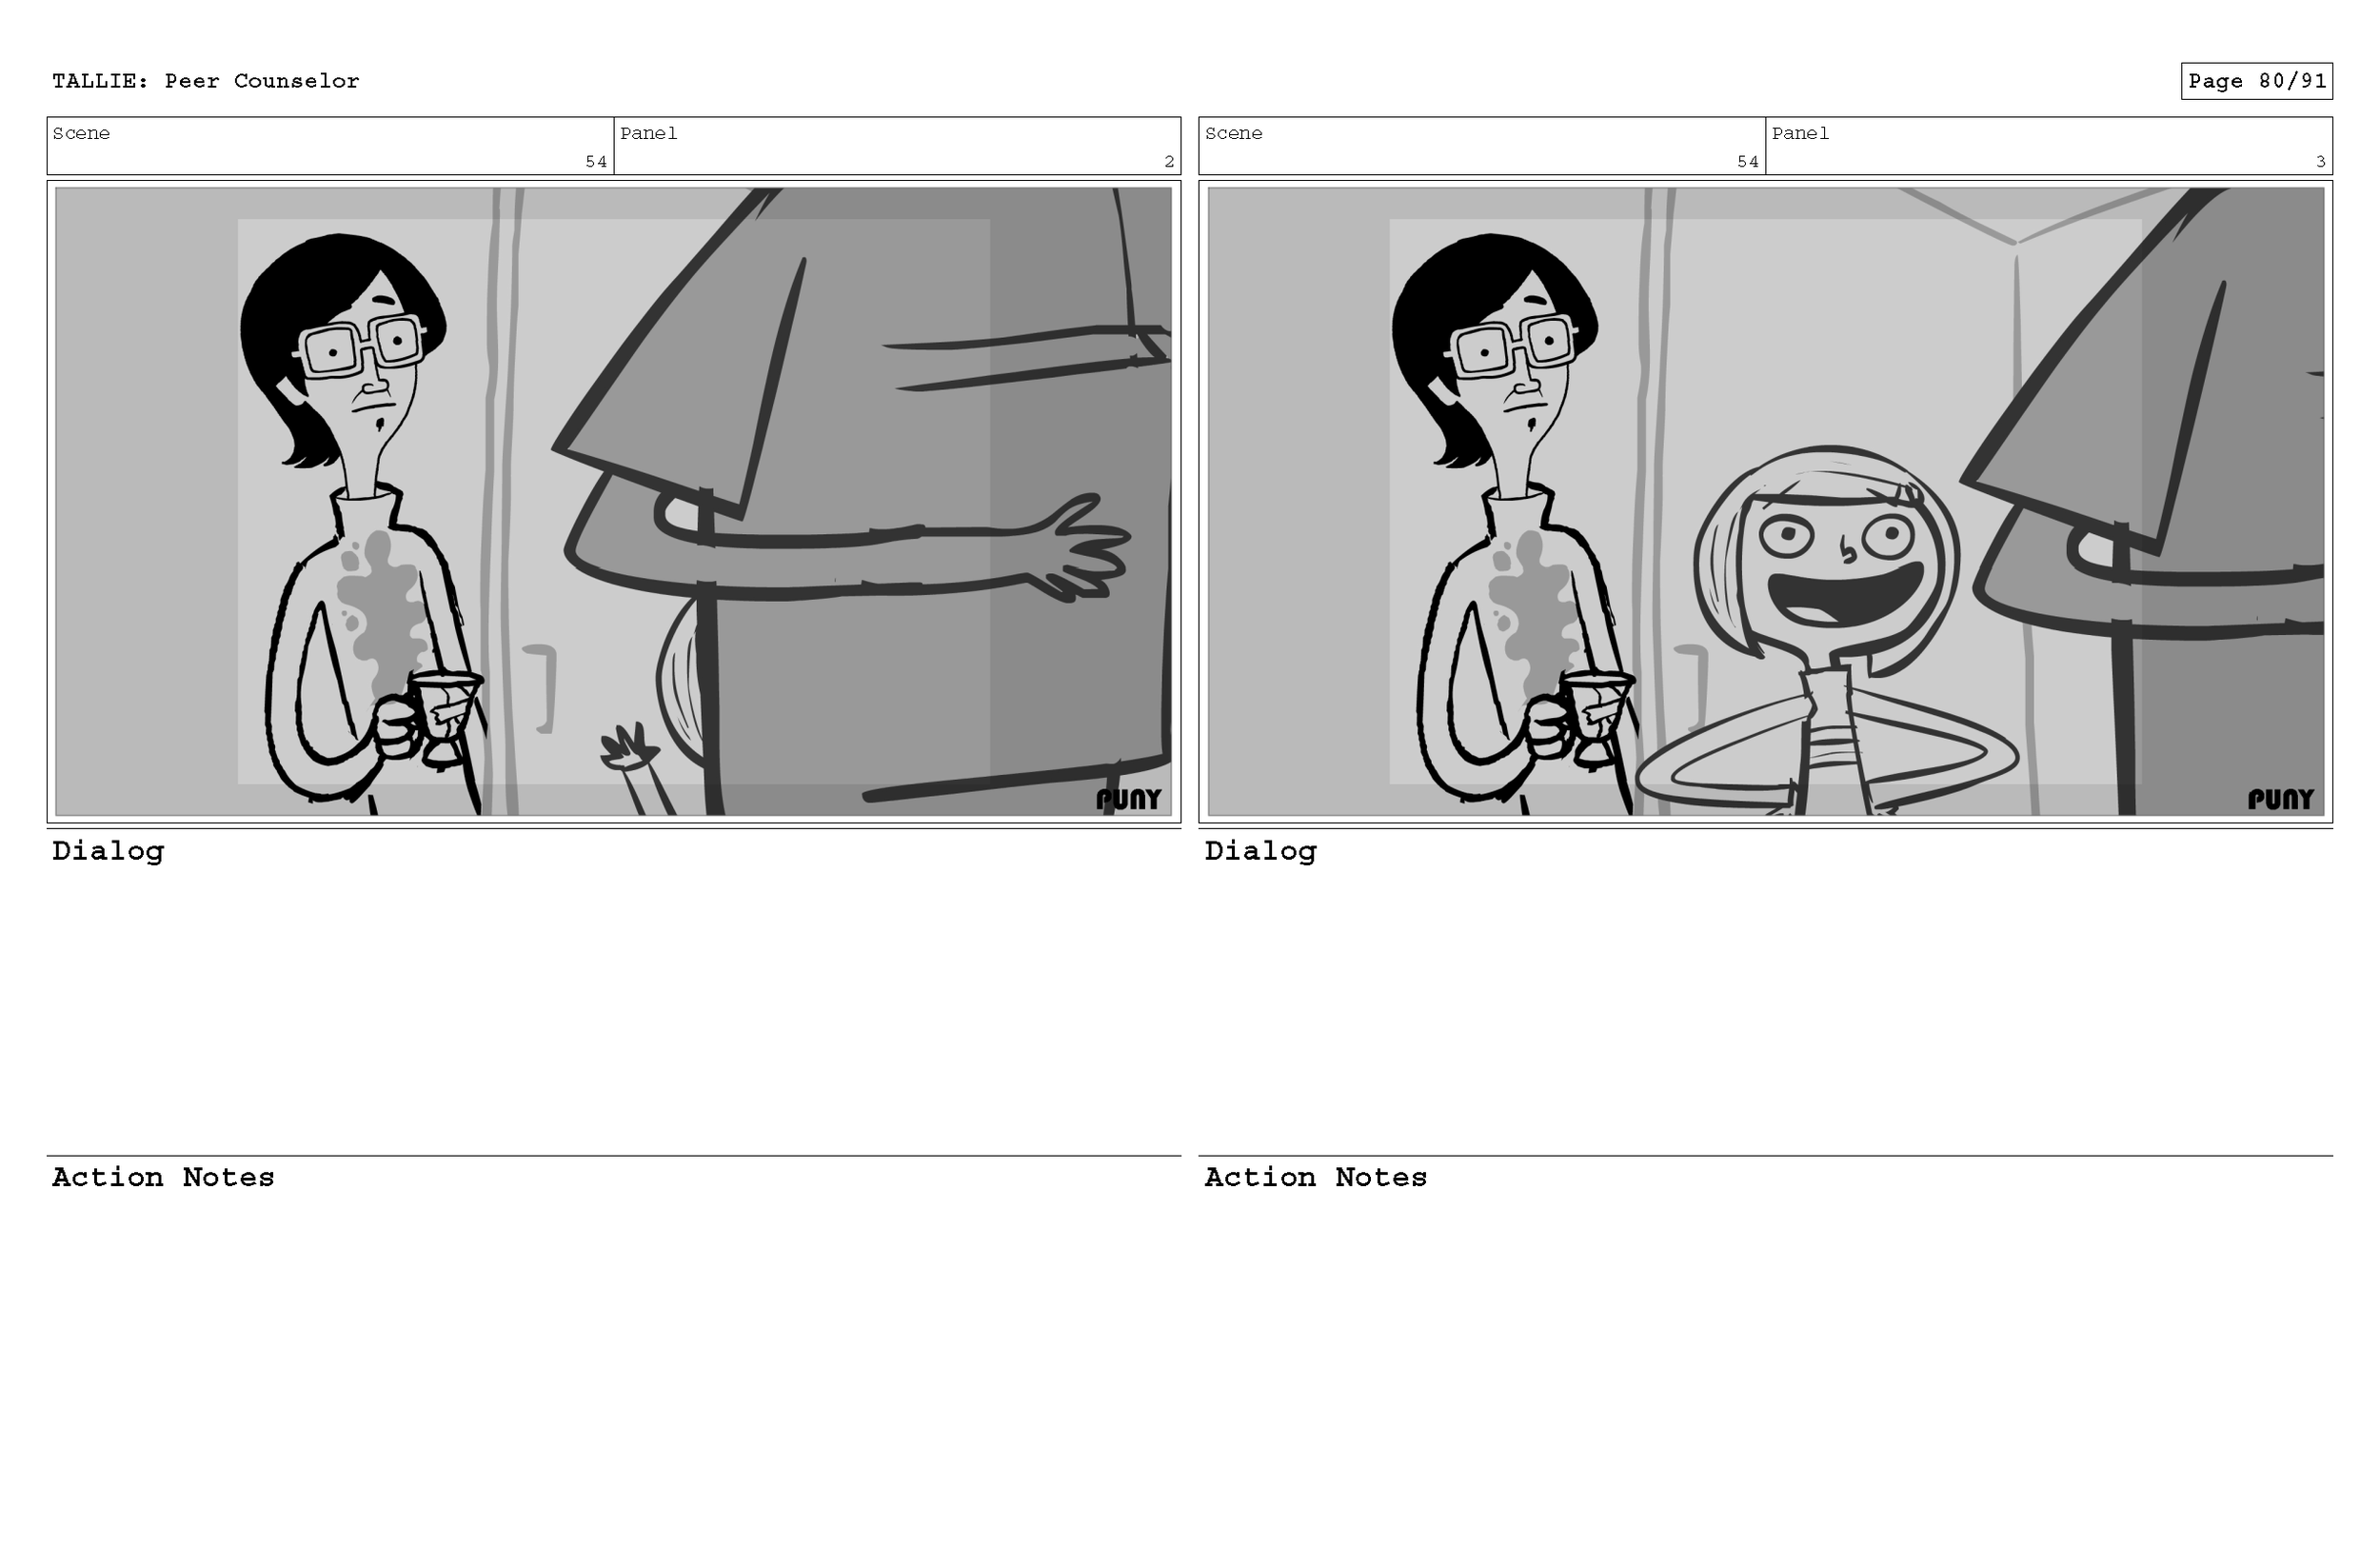 MikeOwens_STORYBOARDS_TallieSilverman_Page_81.png